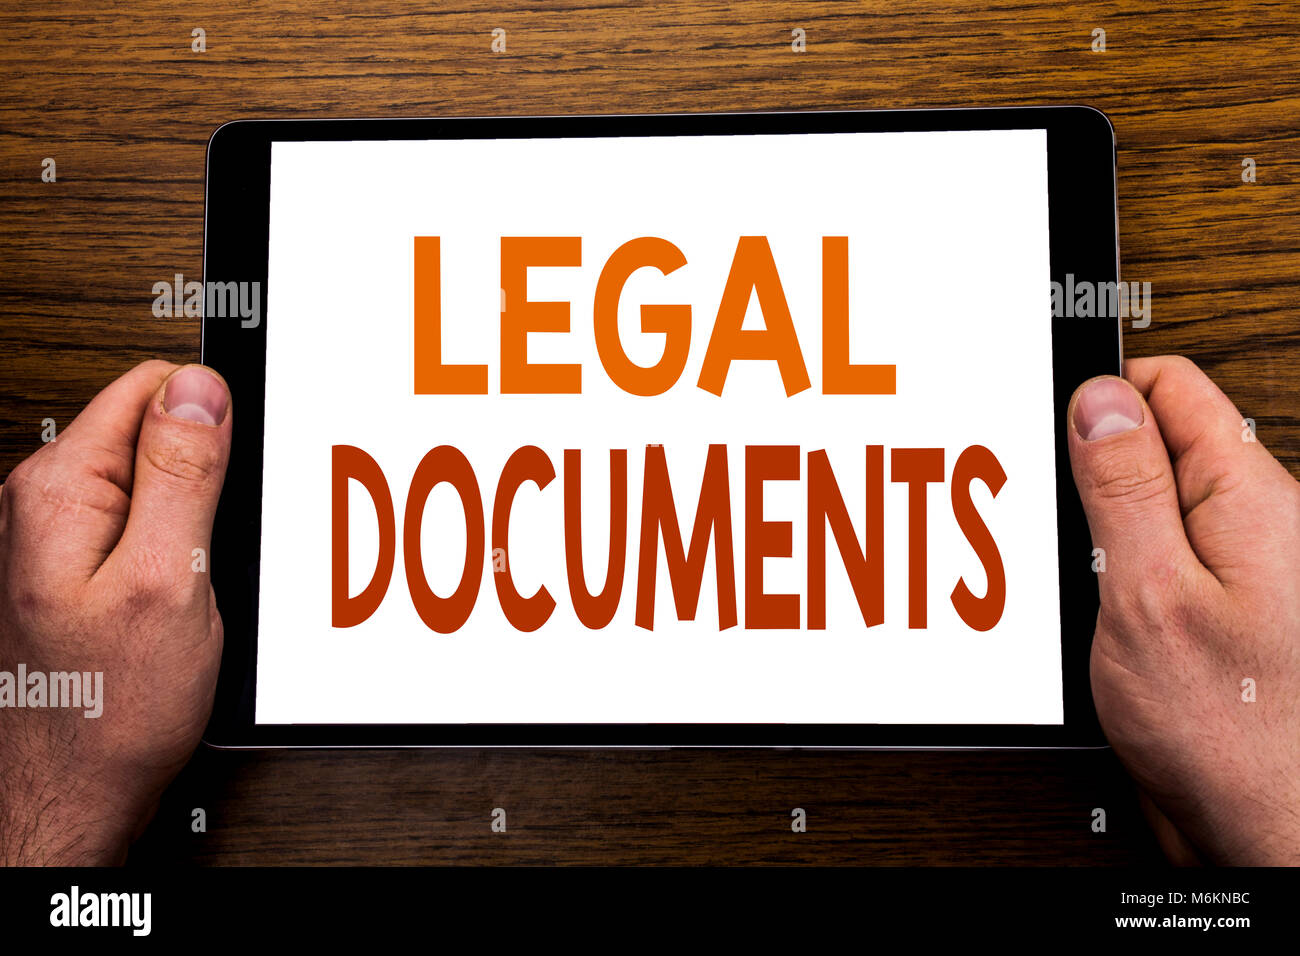 Legal Documents Stock Photos Legal Documents Stock Images Alamy - Legal documents for business